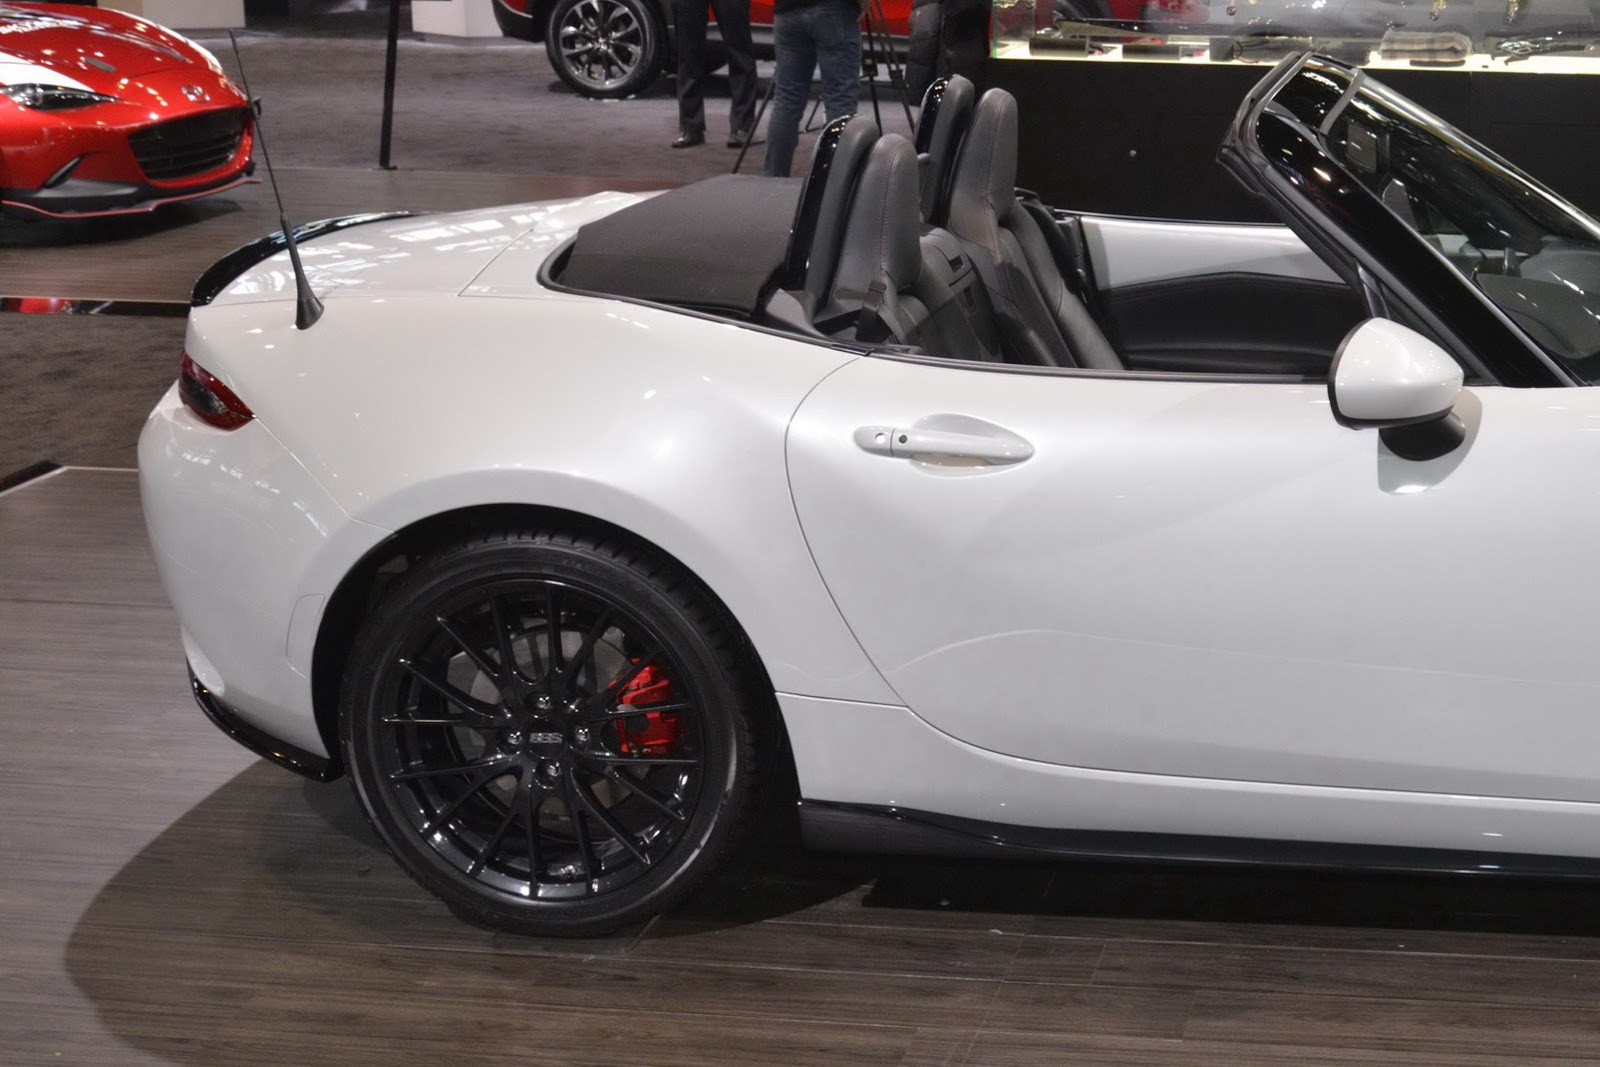 new 2016 mazda mx 5 looks so much better with a sports kit carscoops. Black Bedroom Furniture Sets. Home Design Ideas